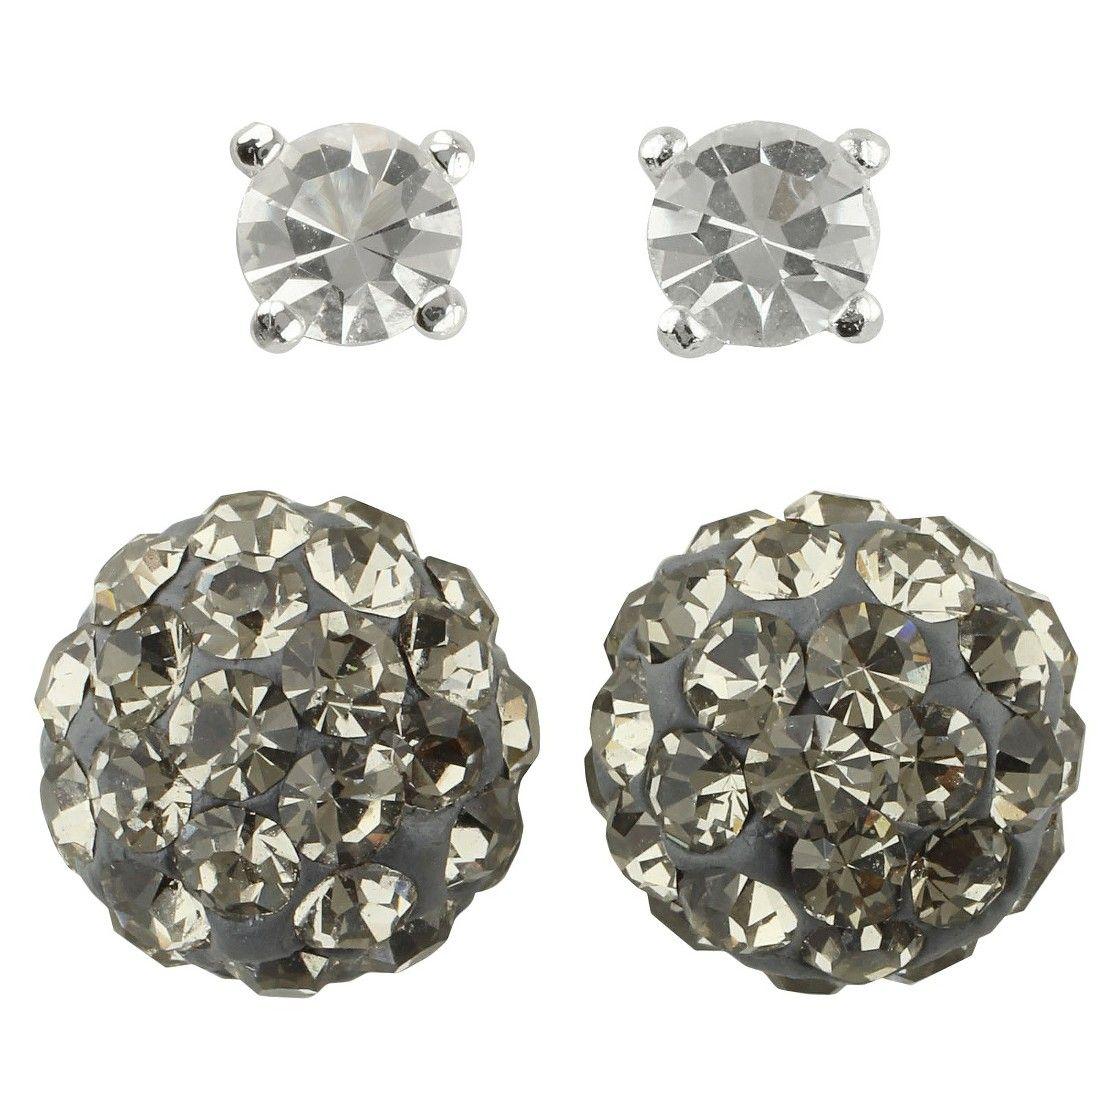 ece568af56fb38 Women's Button Earrings Set of 2 with Crystal Ball and Crystal Fireball -  Silver/Clear/Black